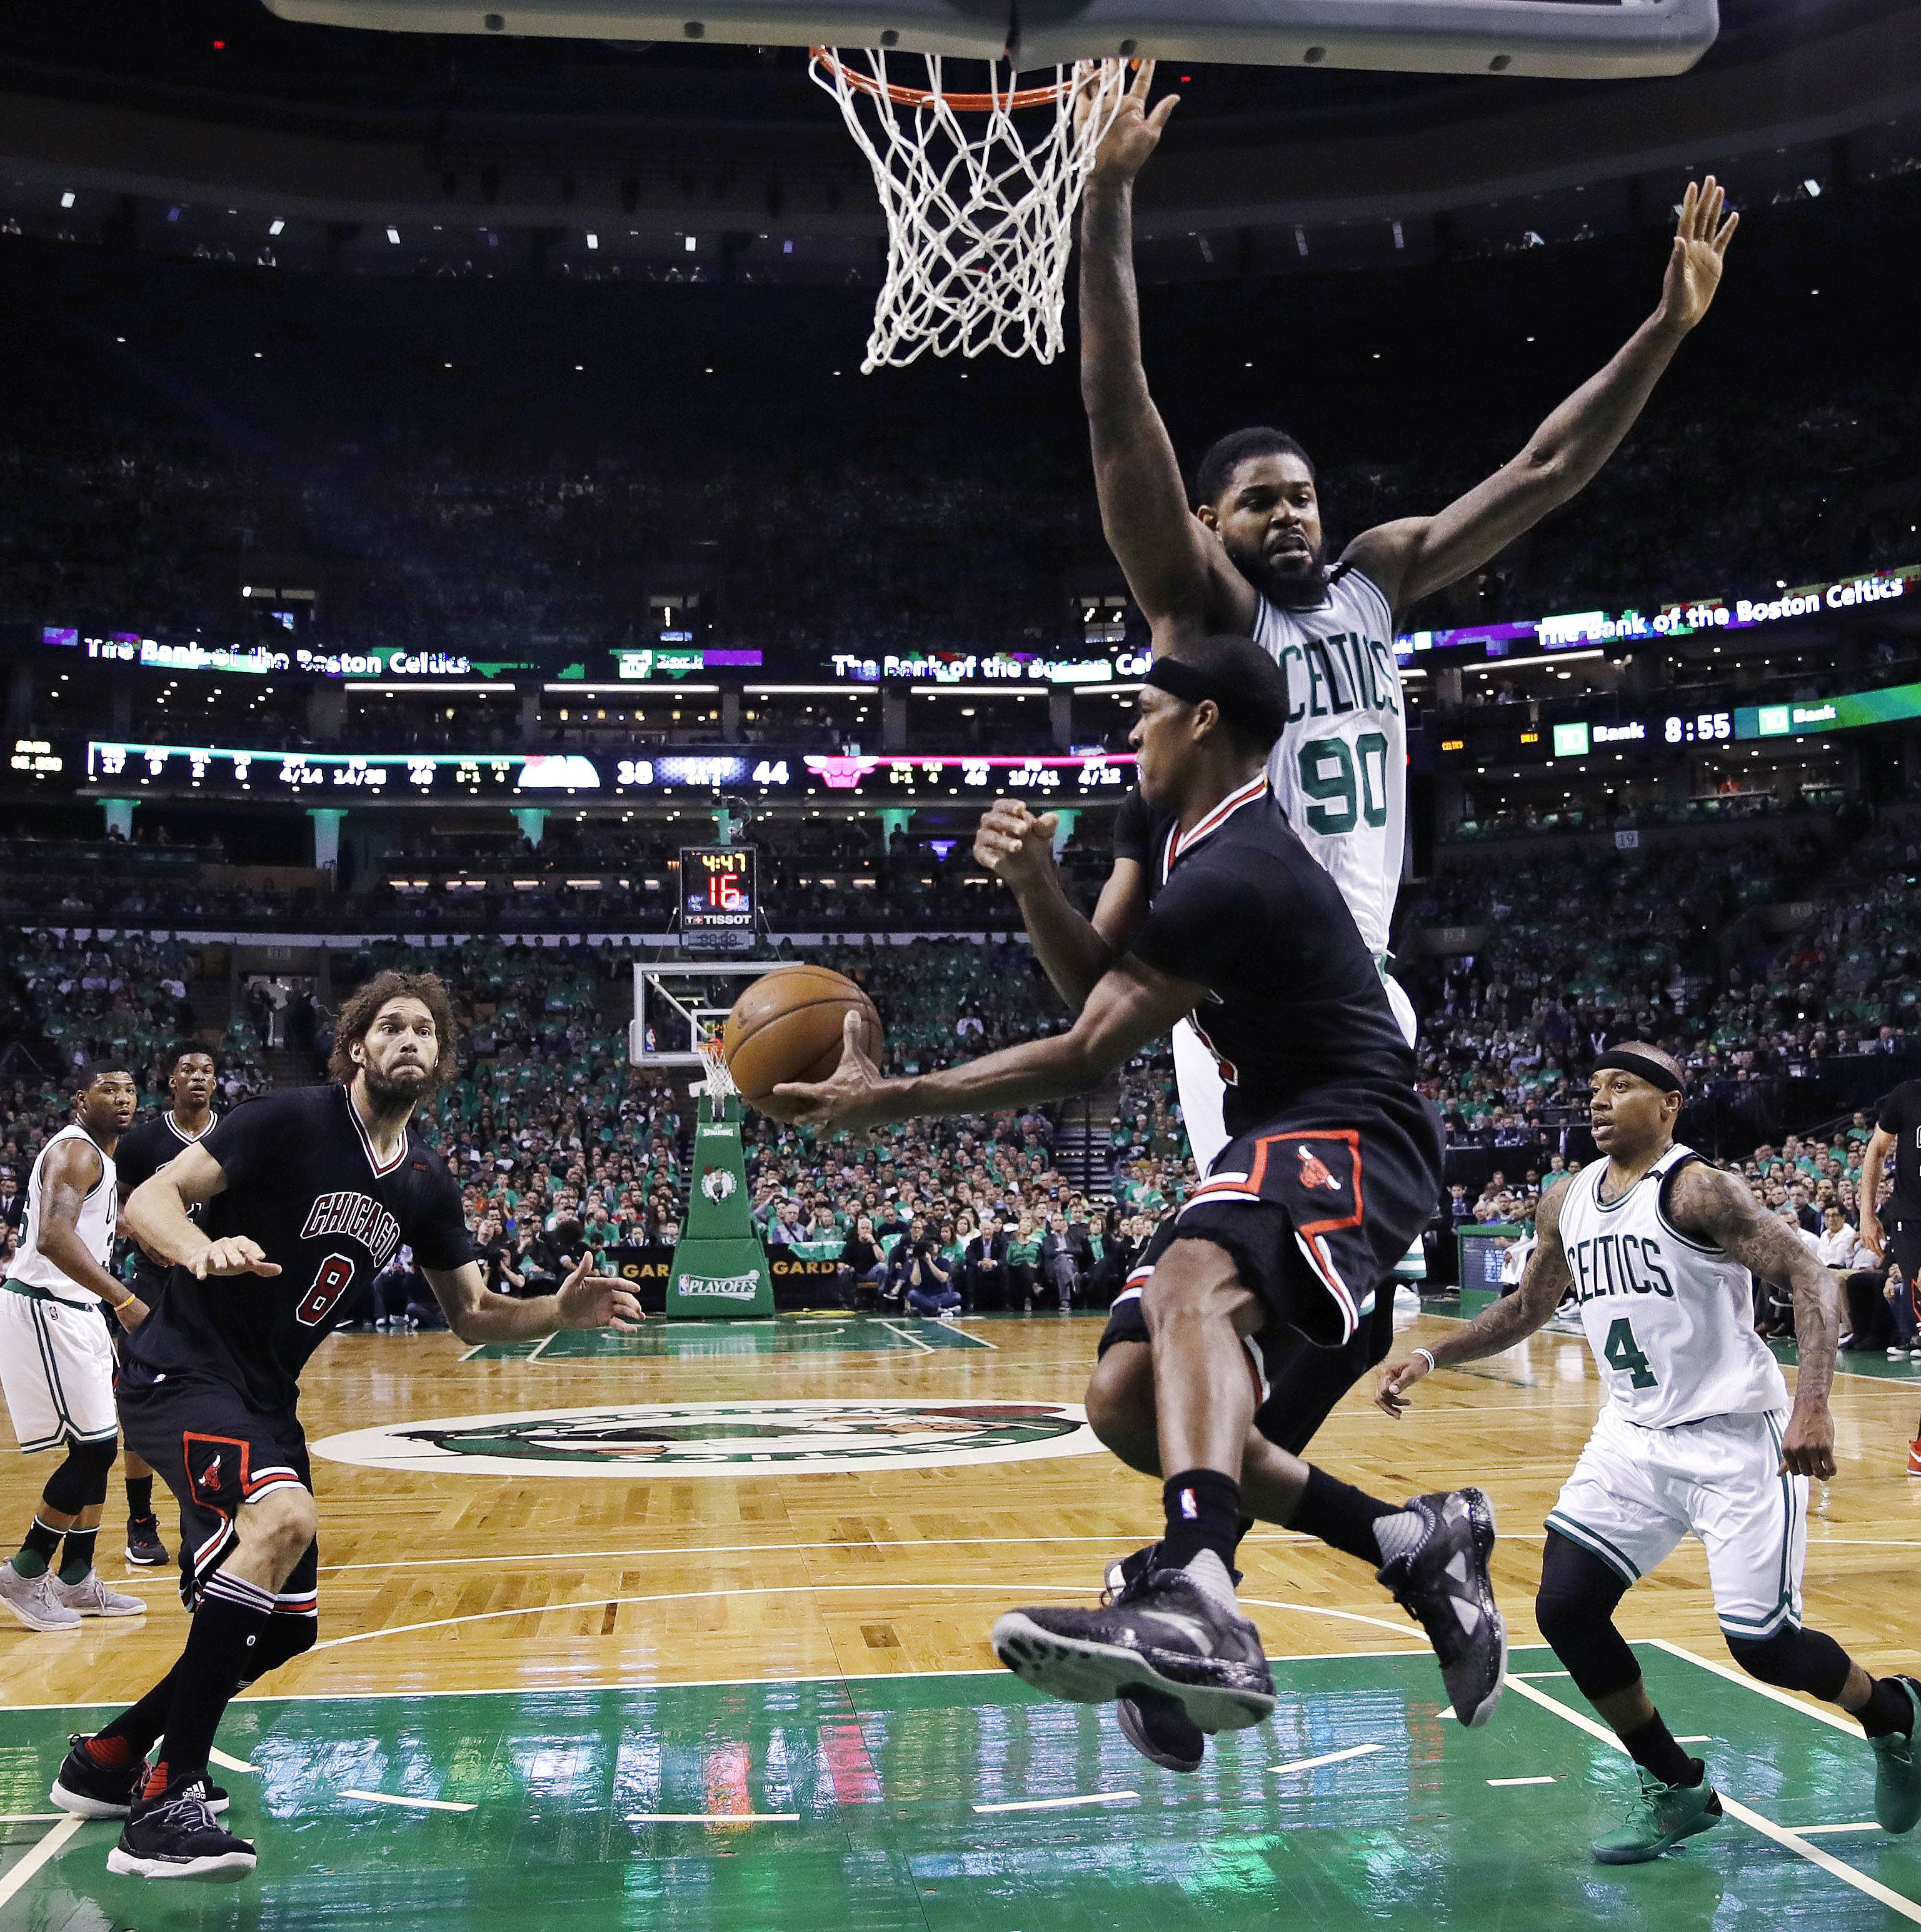 Another stunner in Boston as Bulls take 2-0 series lead